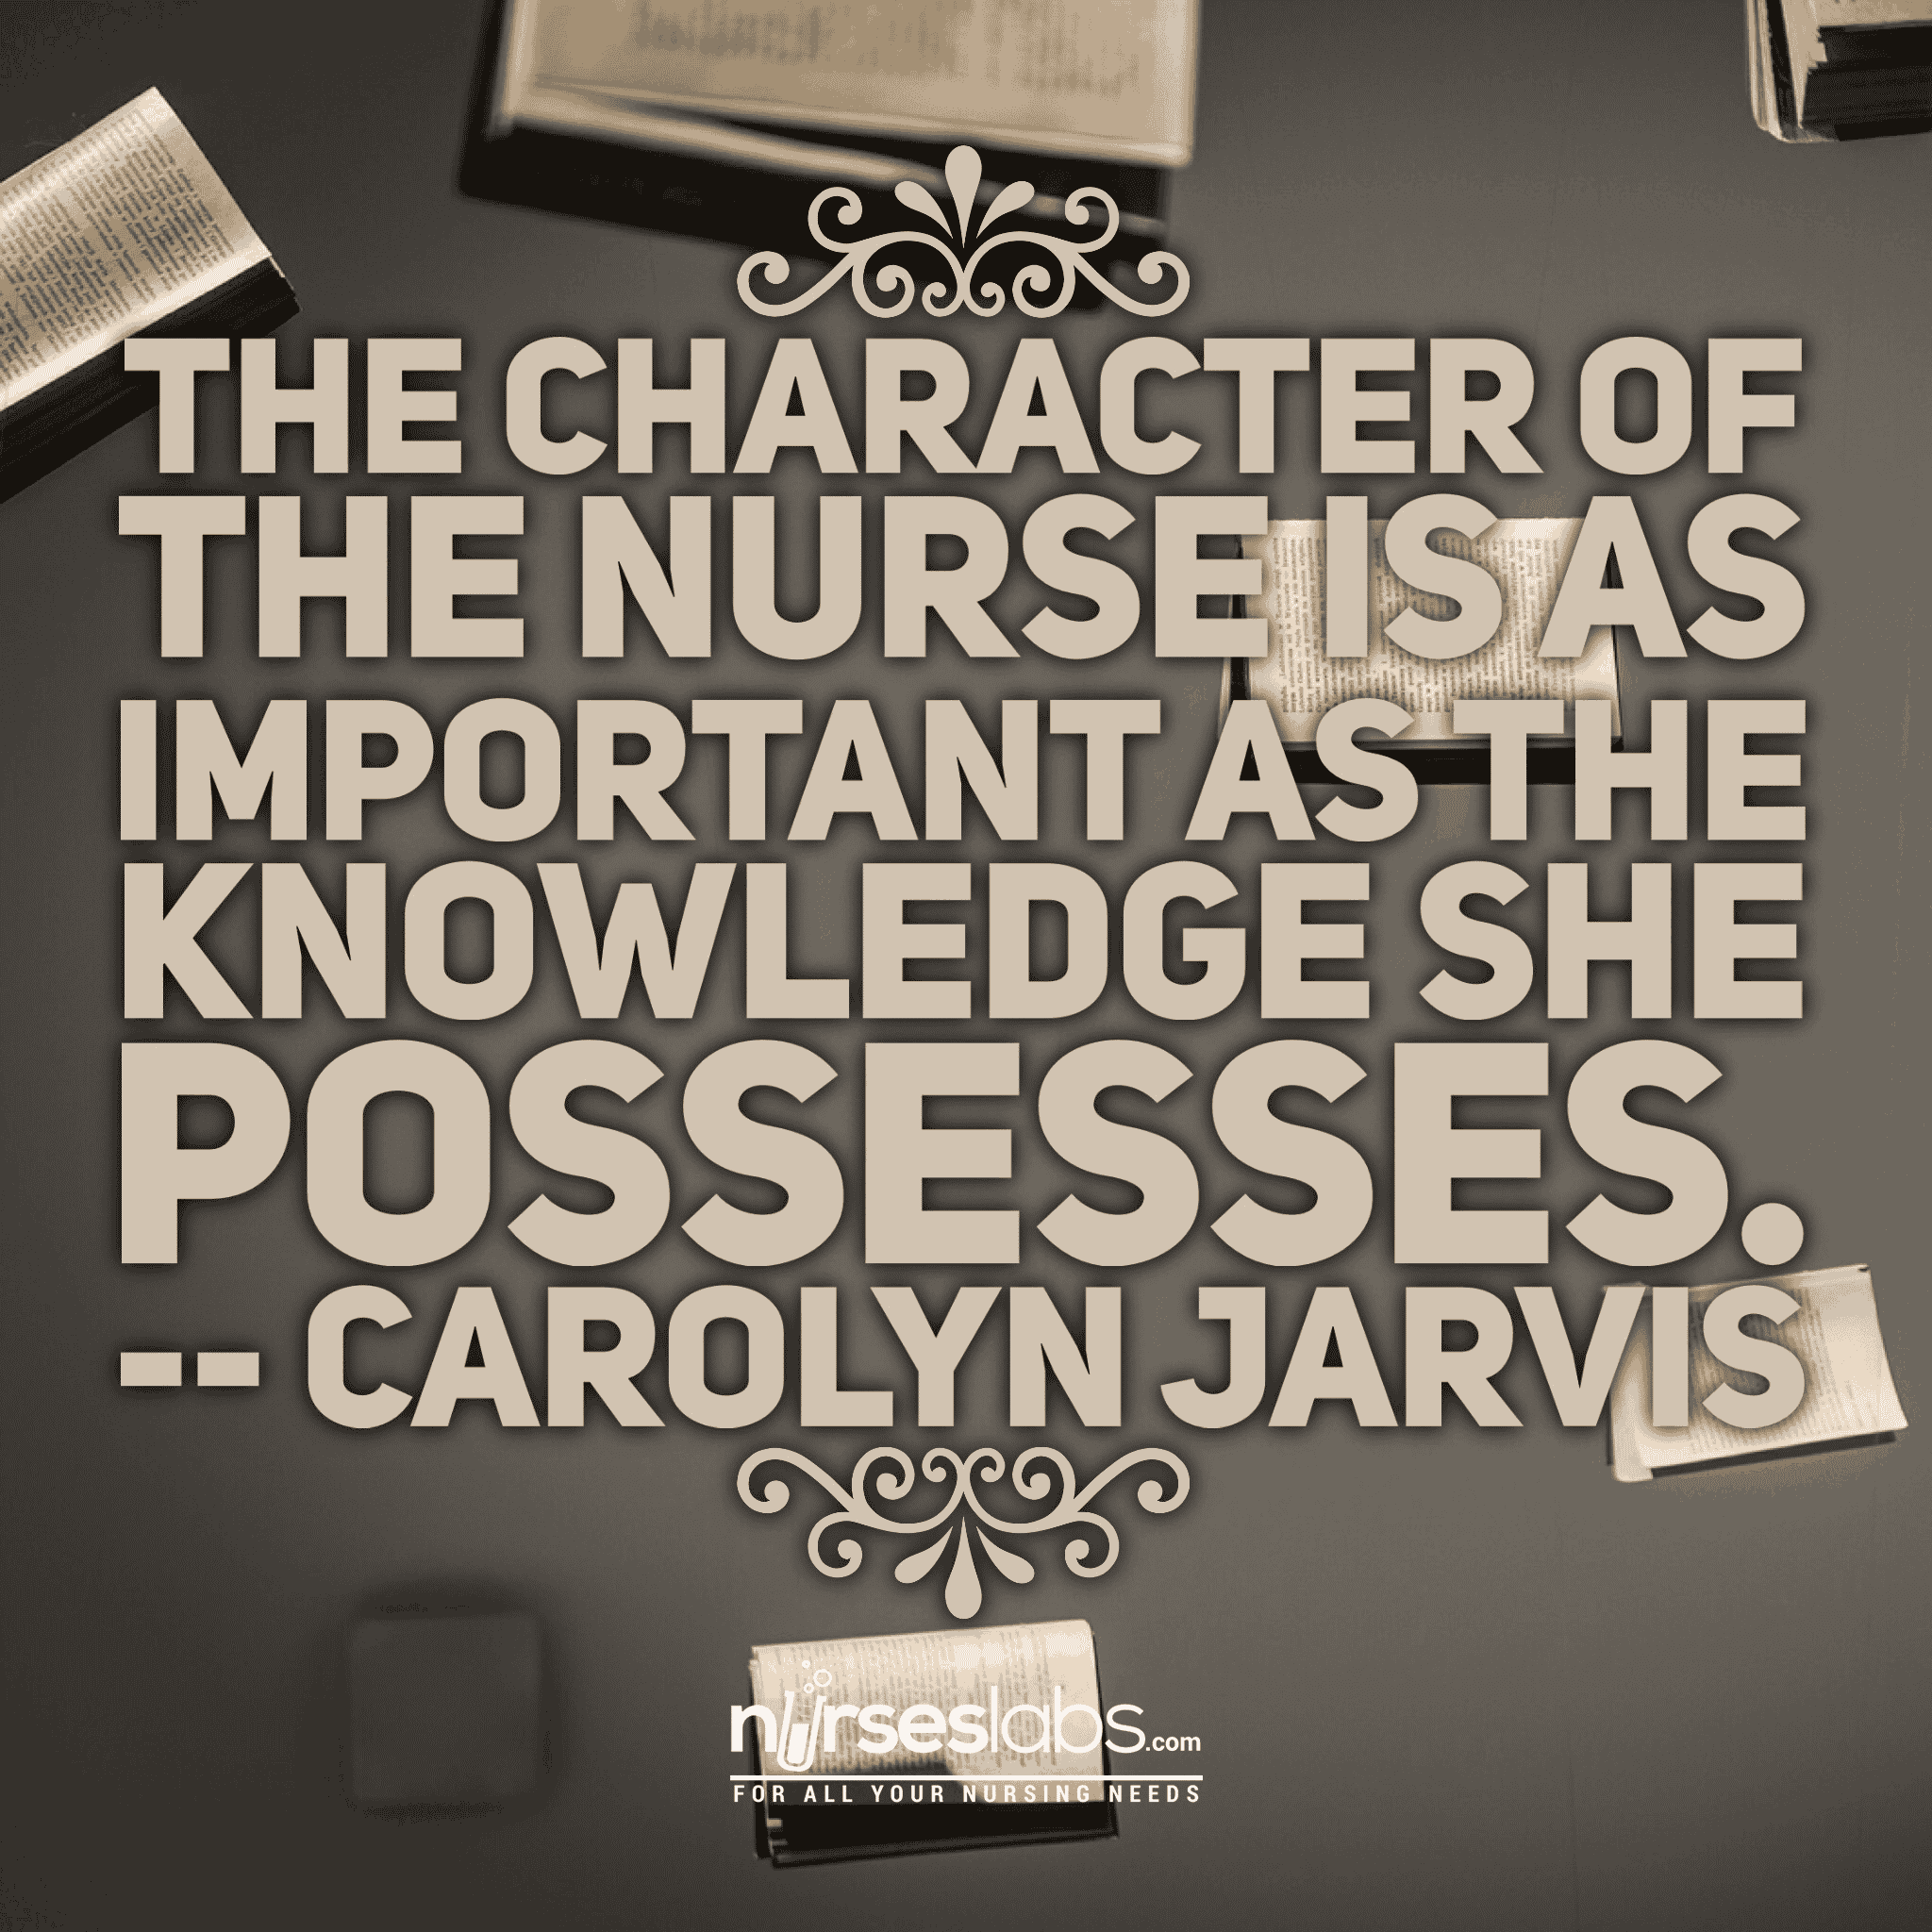 The character of the nurse is as important as the knowledge she possesses.